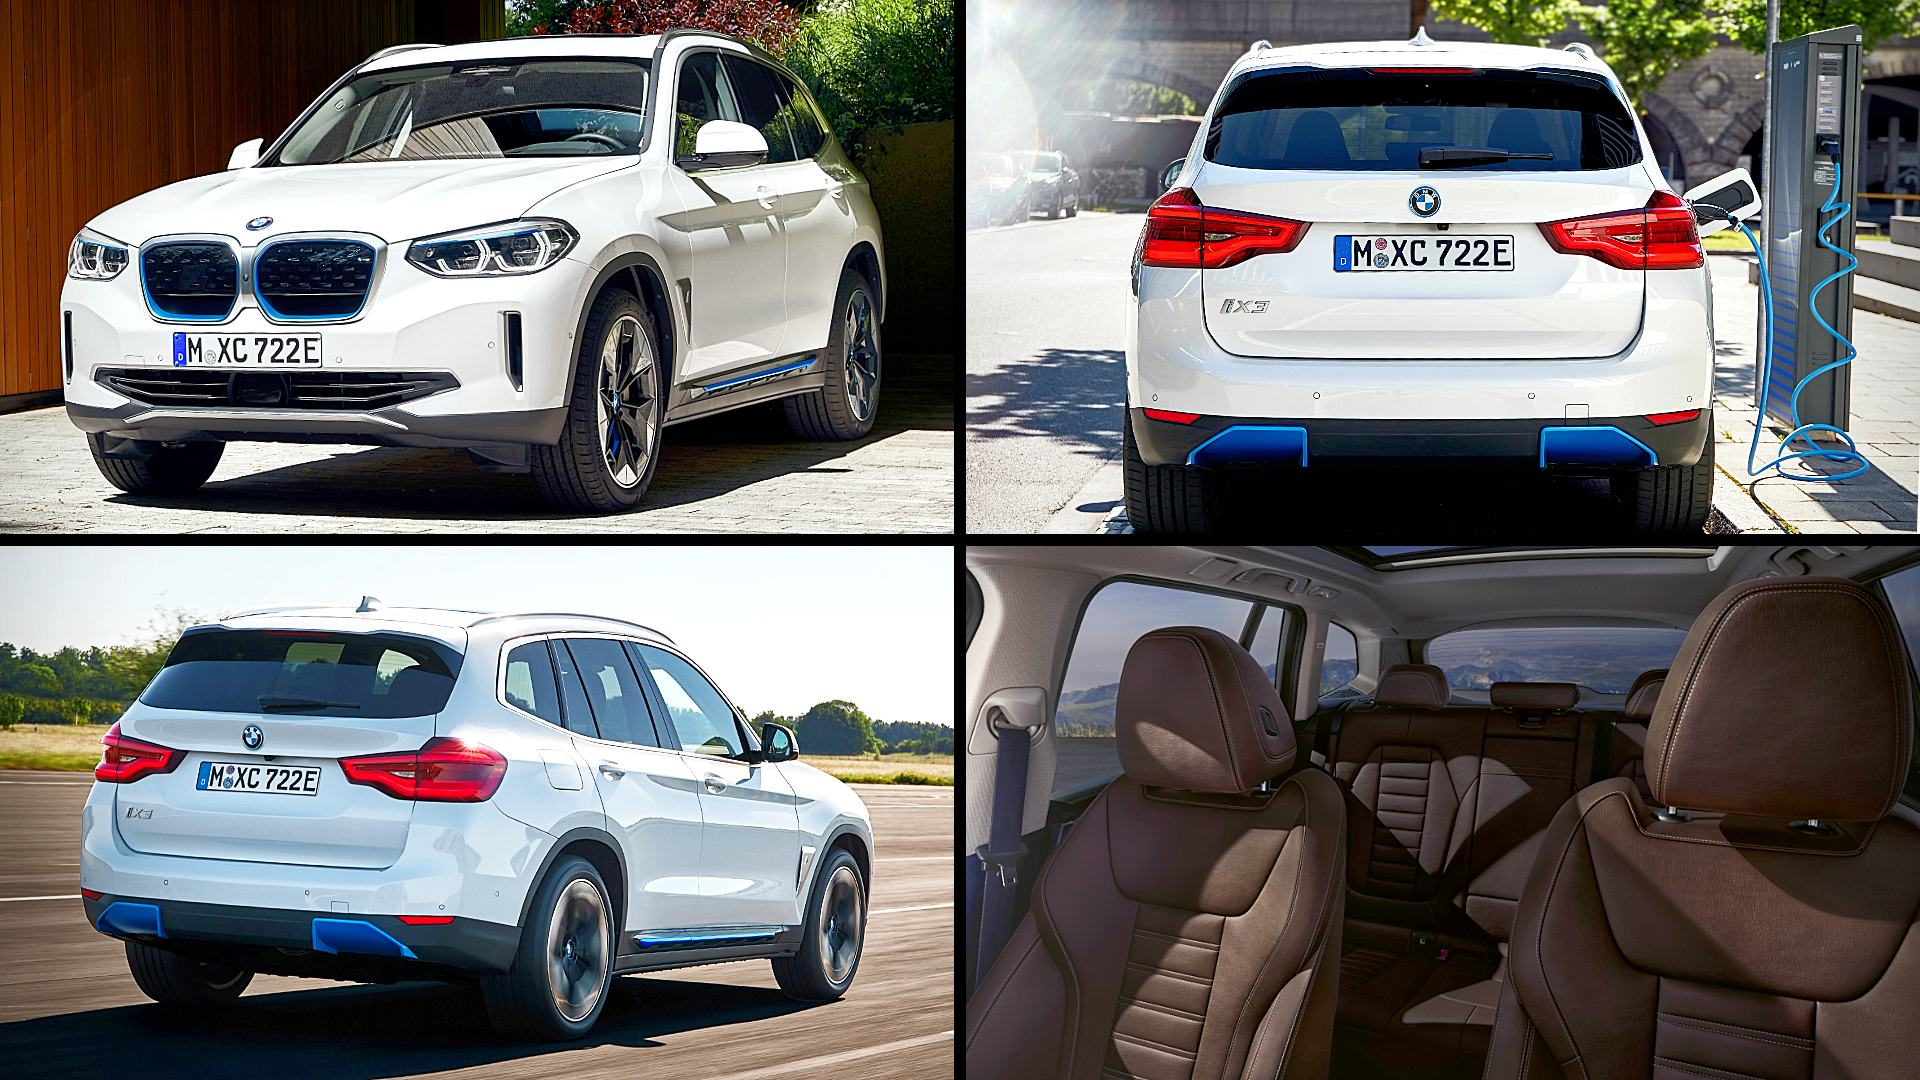 2021 BMW iX3 Electric Images Pictures